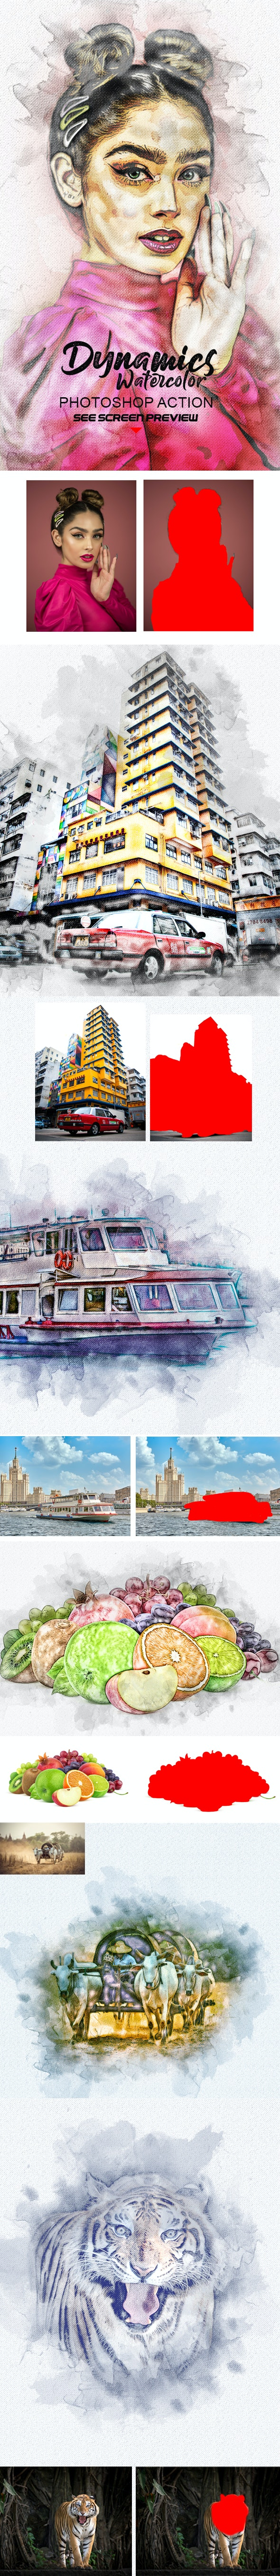 Watercolor Photoshop Action - Actions Photoshop